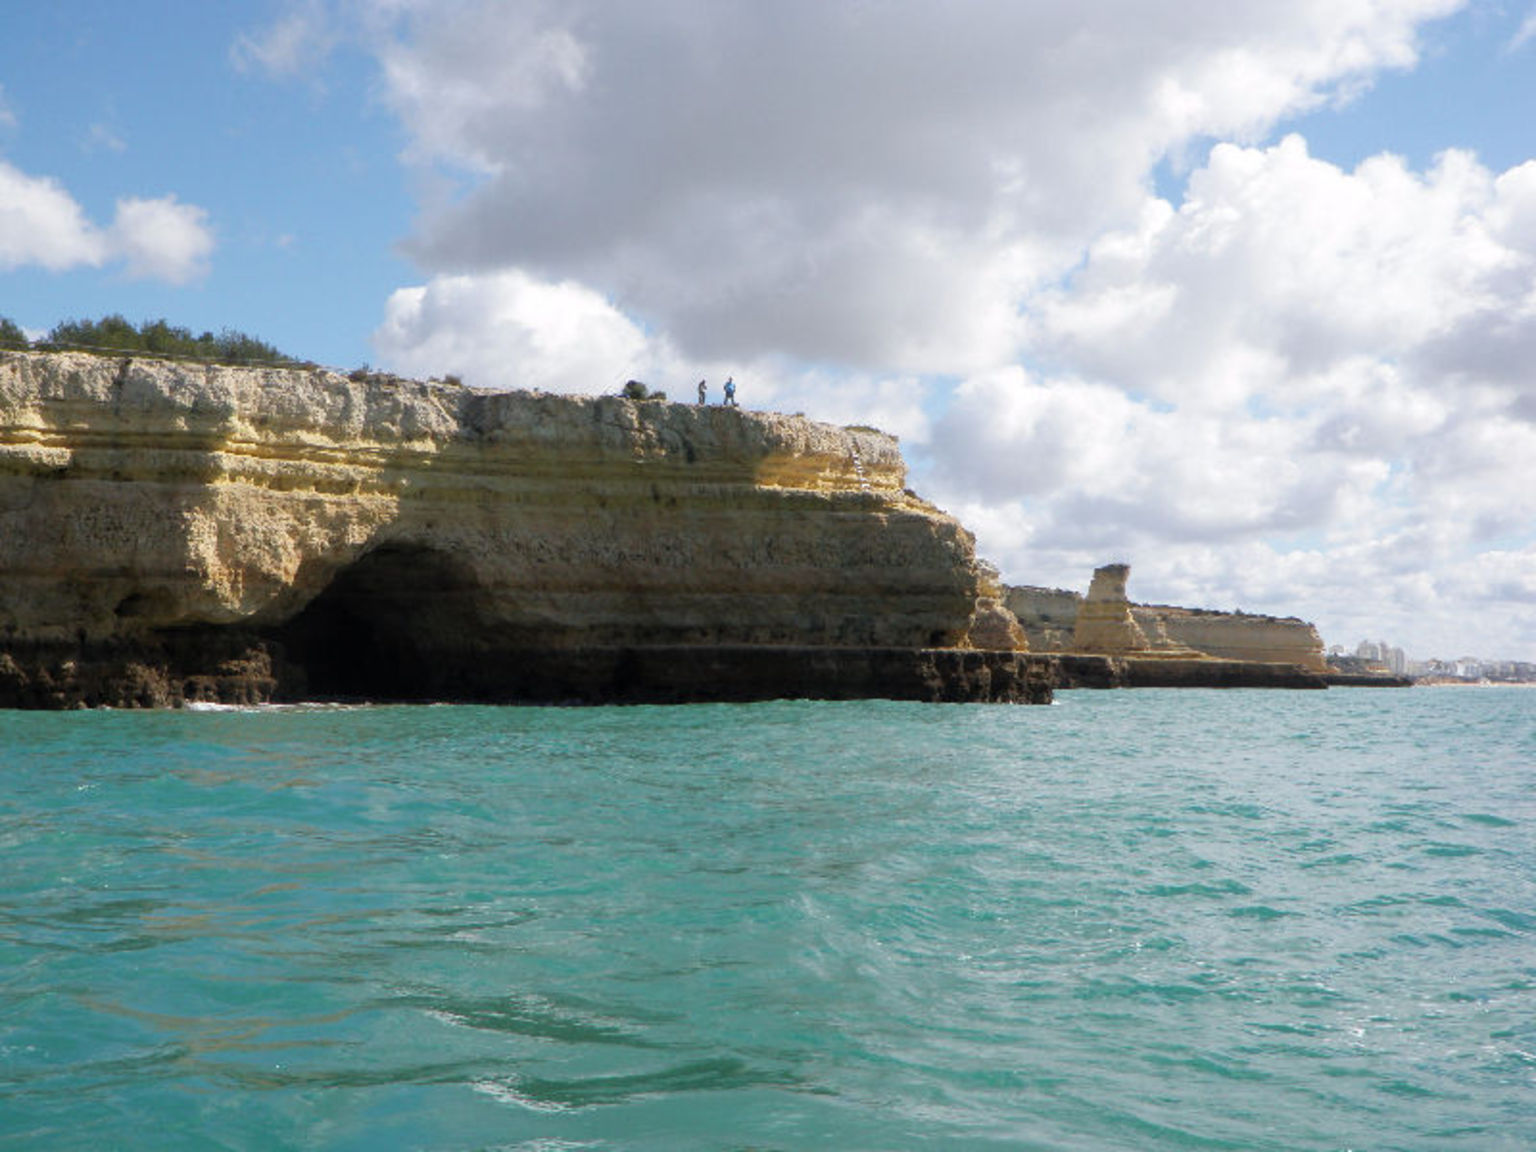 MORE PHOTOS, Dolphin Watching and Cave Tour near Albufeira